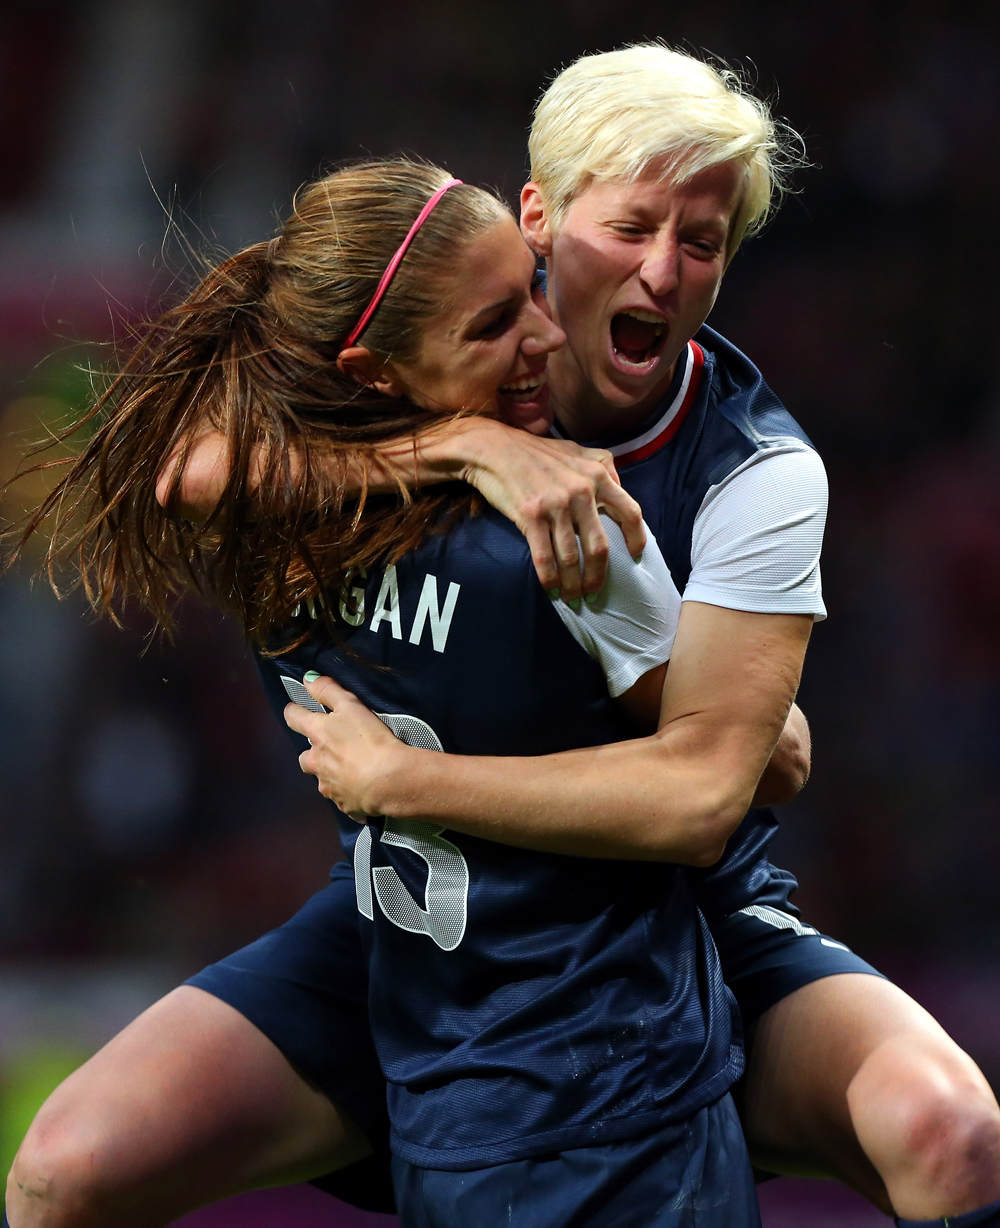 U.S. women down Canada in thriller